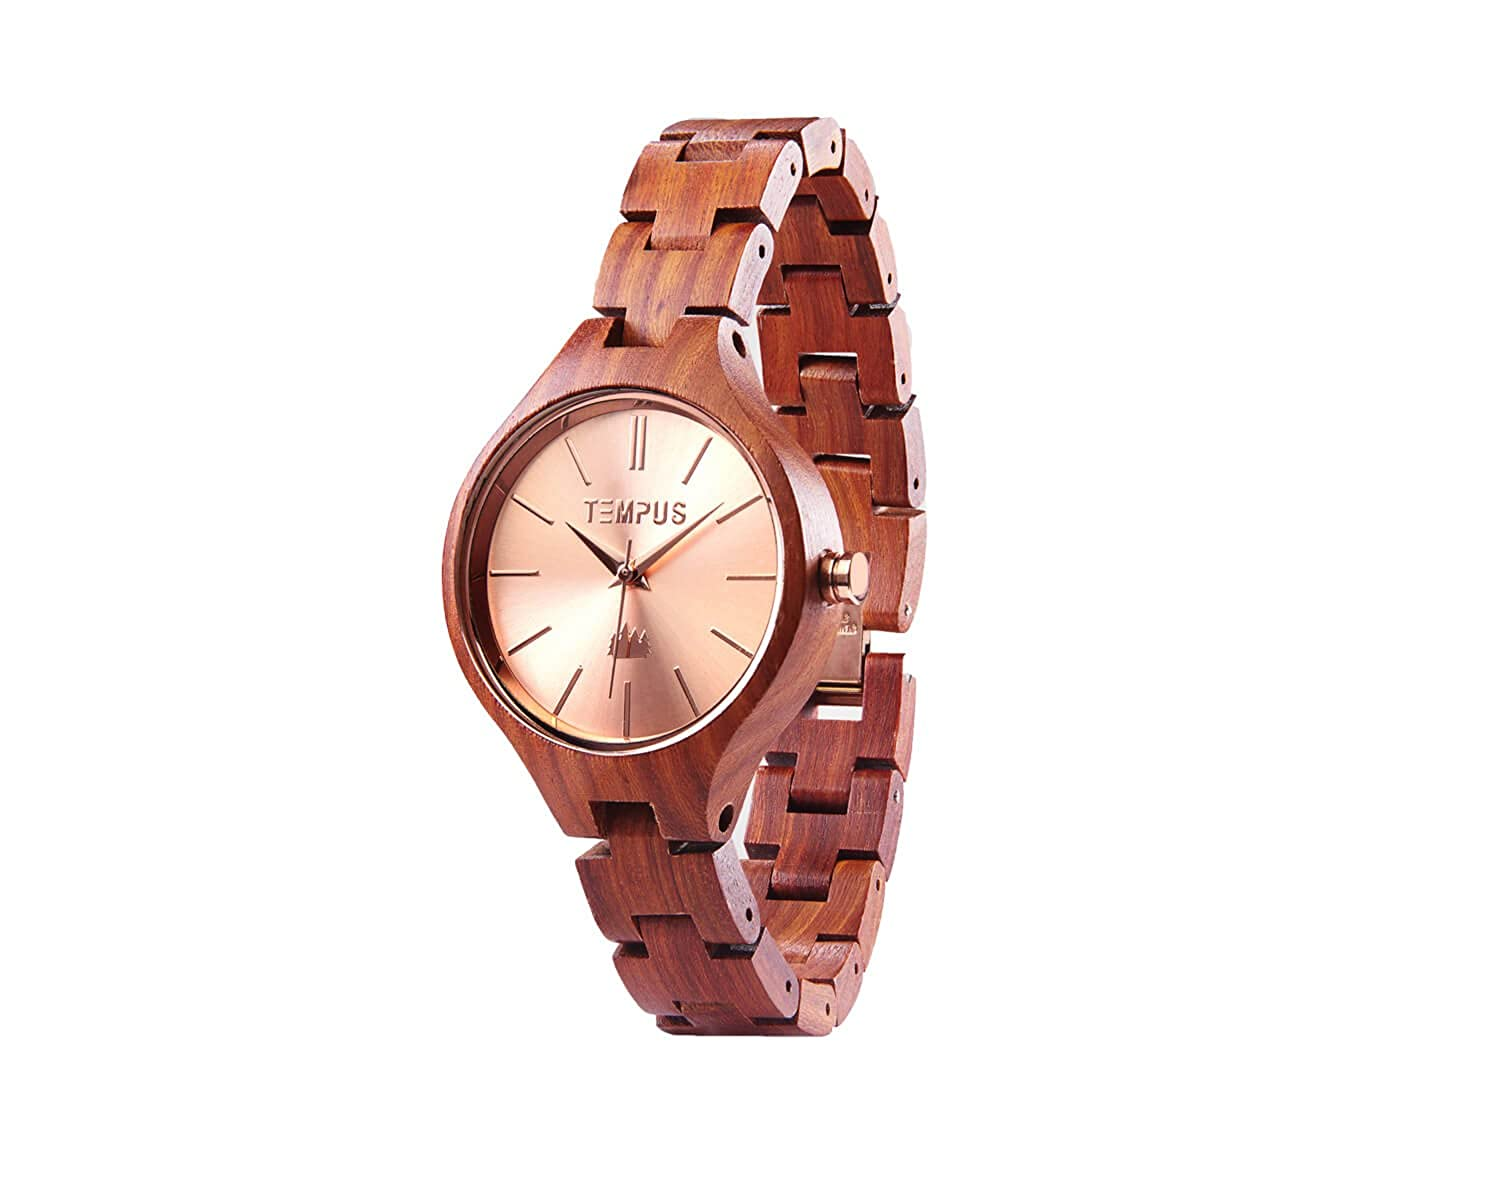 Amazon.com: Tempus Elenor - Rose Gold Red Sandalwood Womens Wood Wooden Bracelet Watch Fashion - TWW-03: Watches